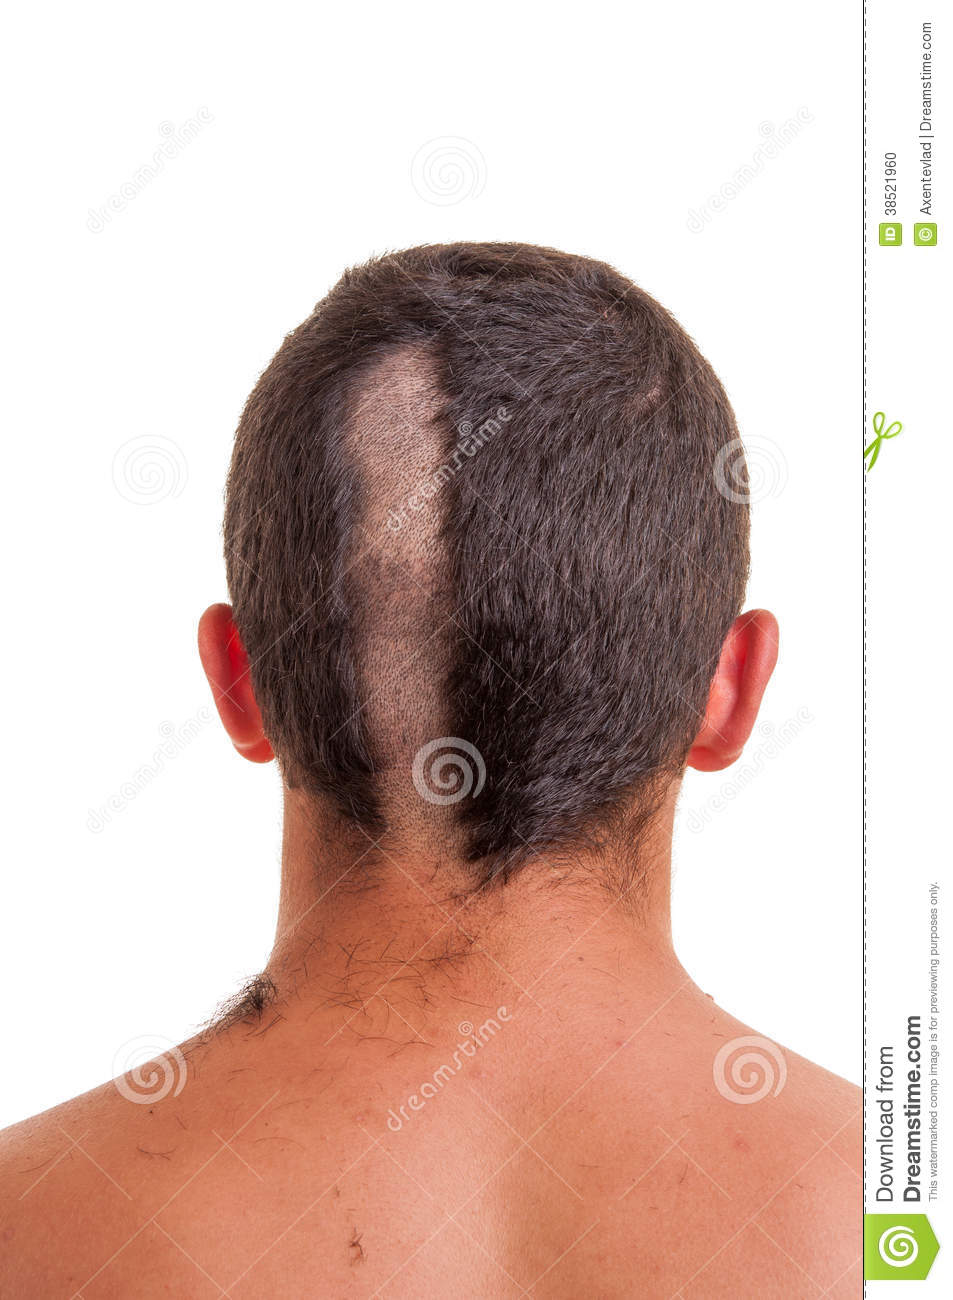 back of man head while his hair is cut stock photo - image